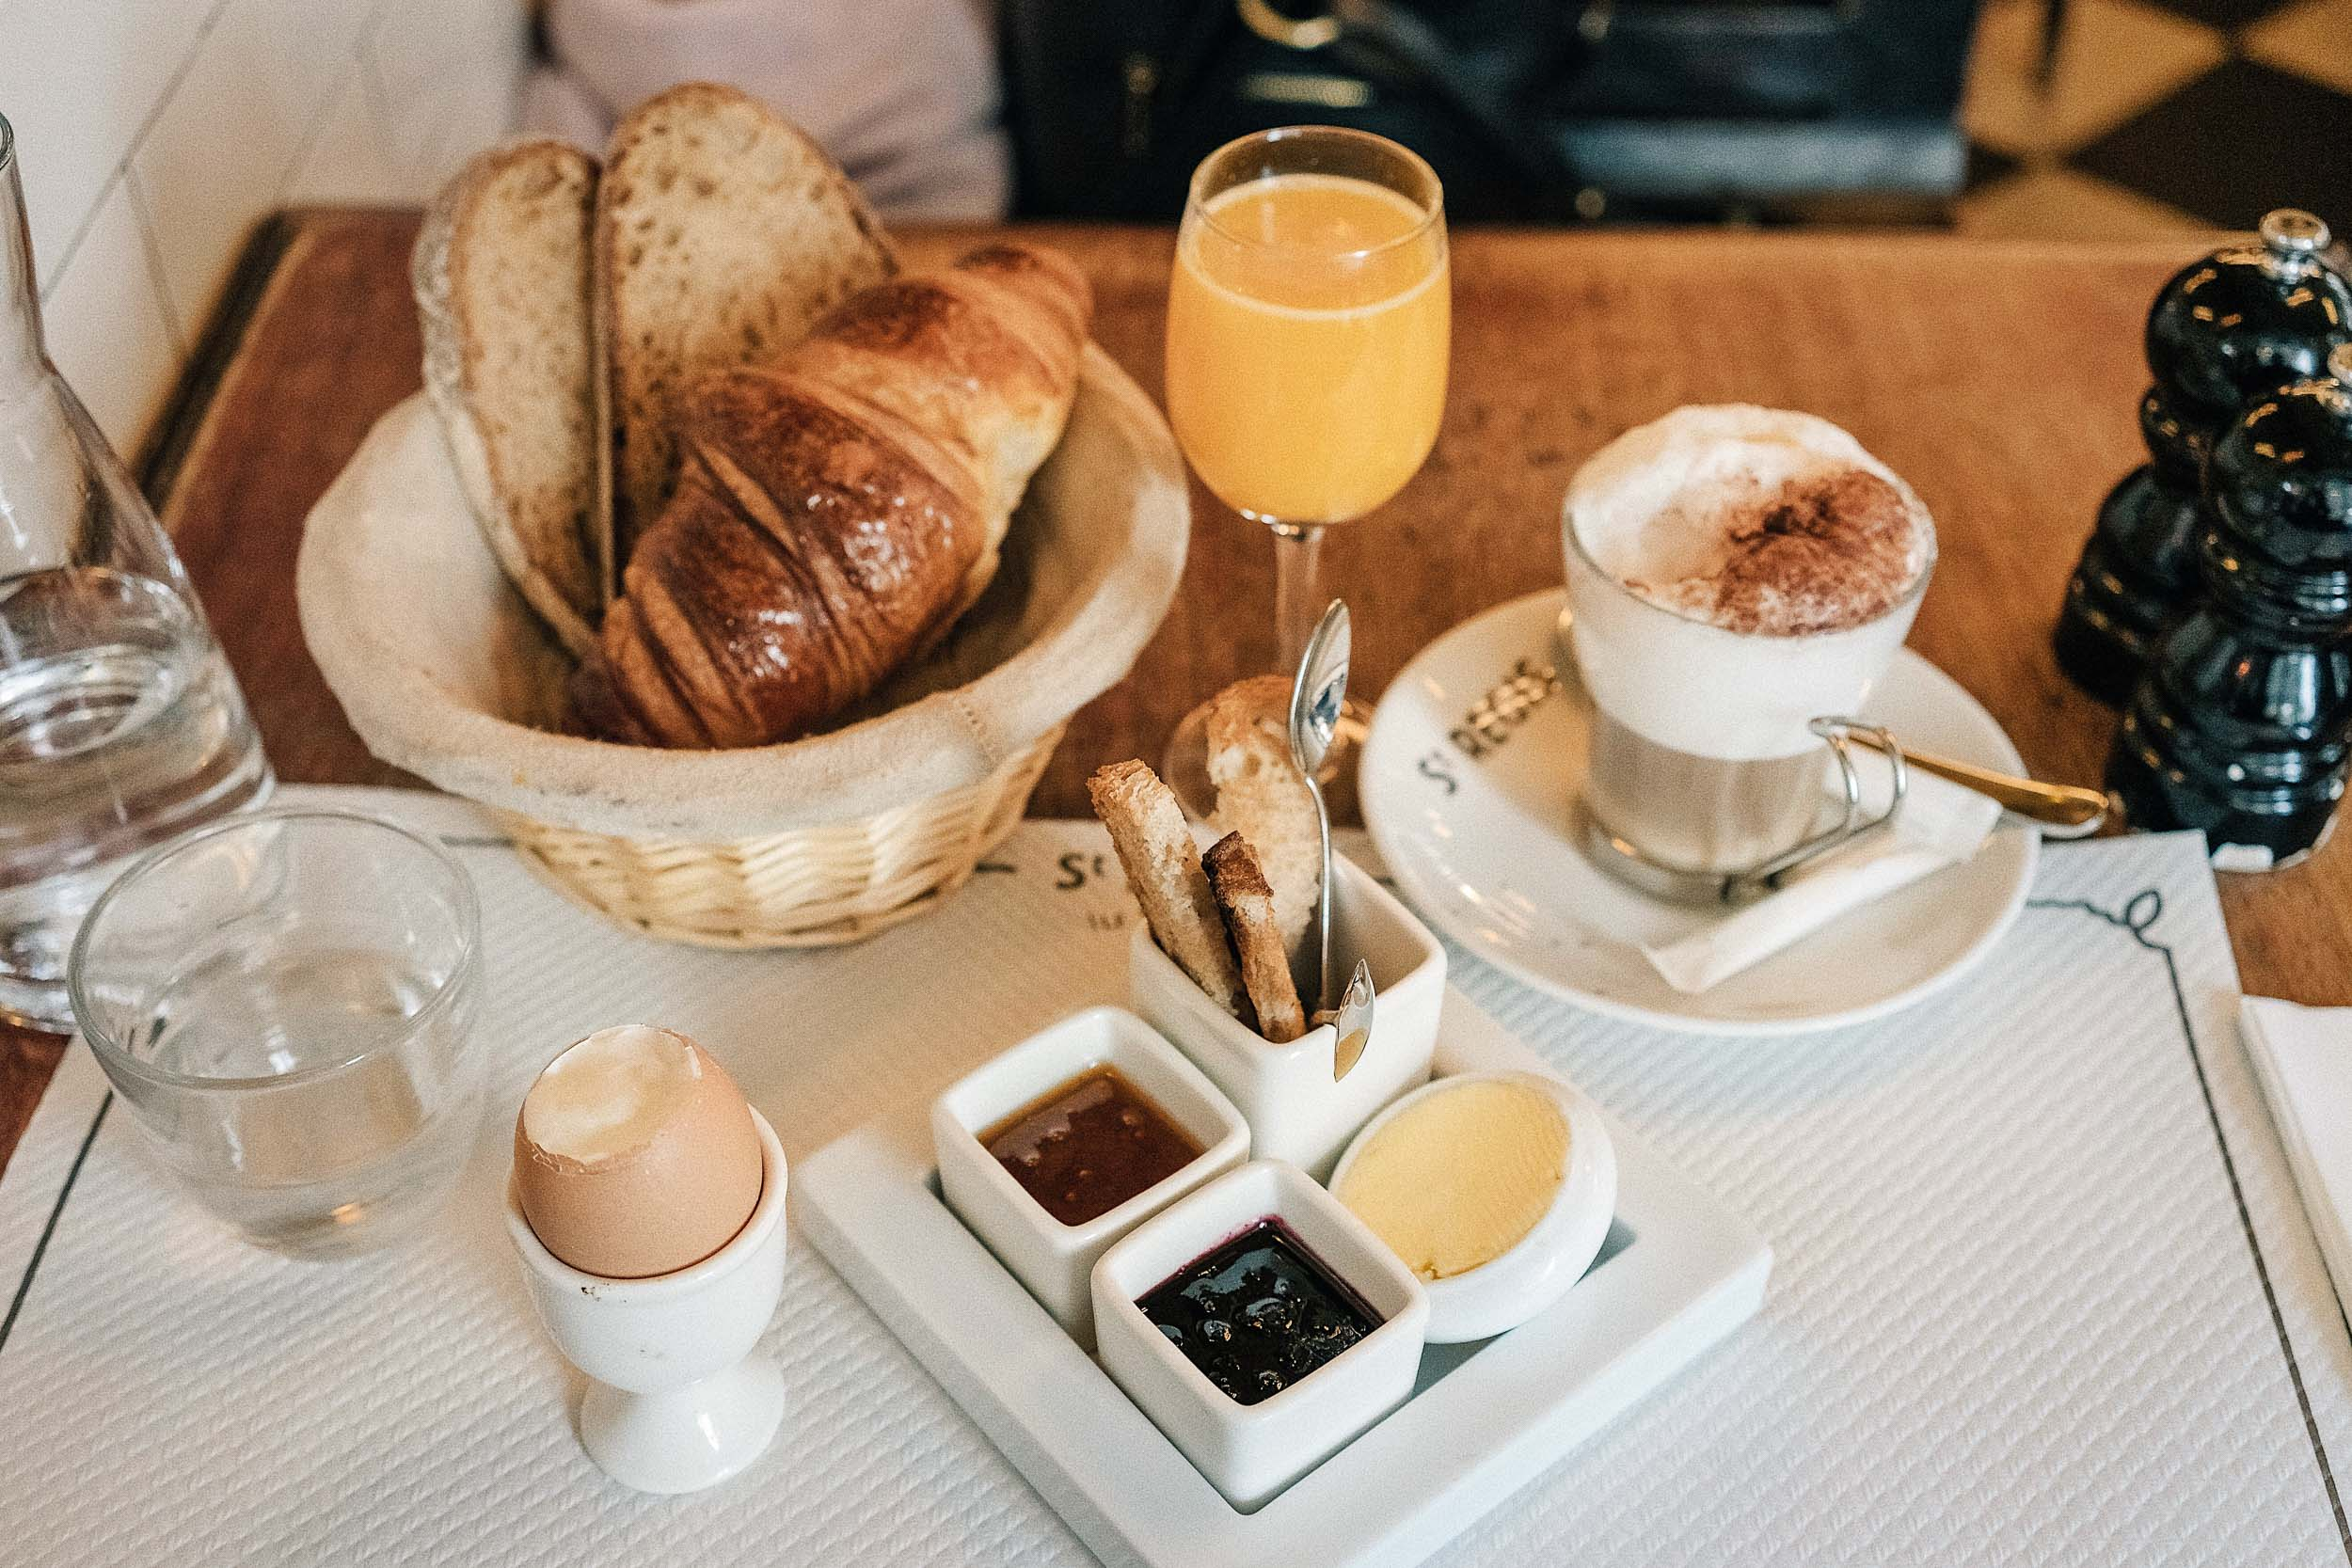 The best food in Paris: croissants, French bread, cappuccinos, and more at Cafe Saint Regis